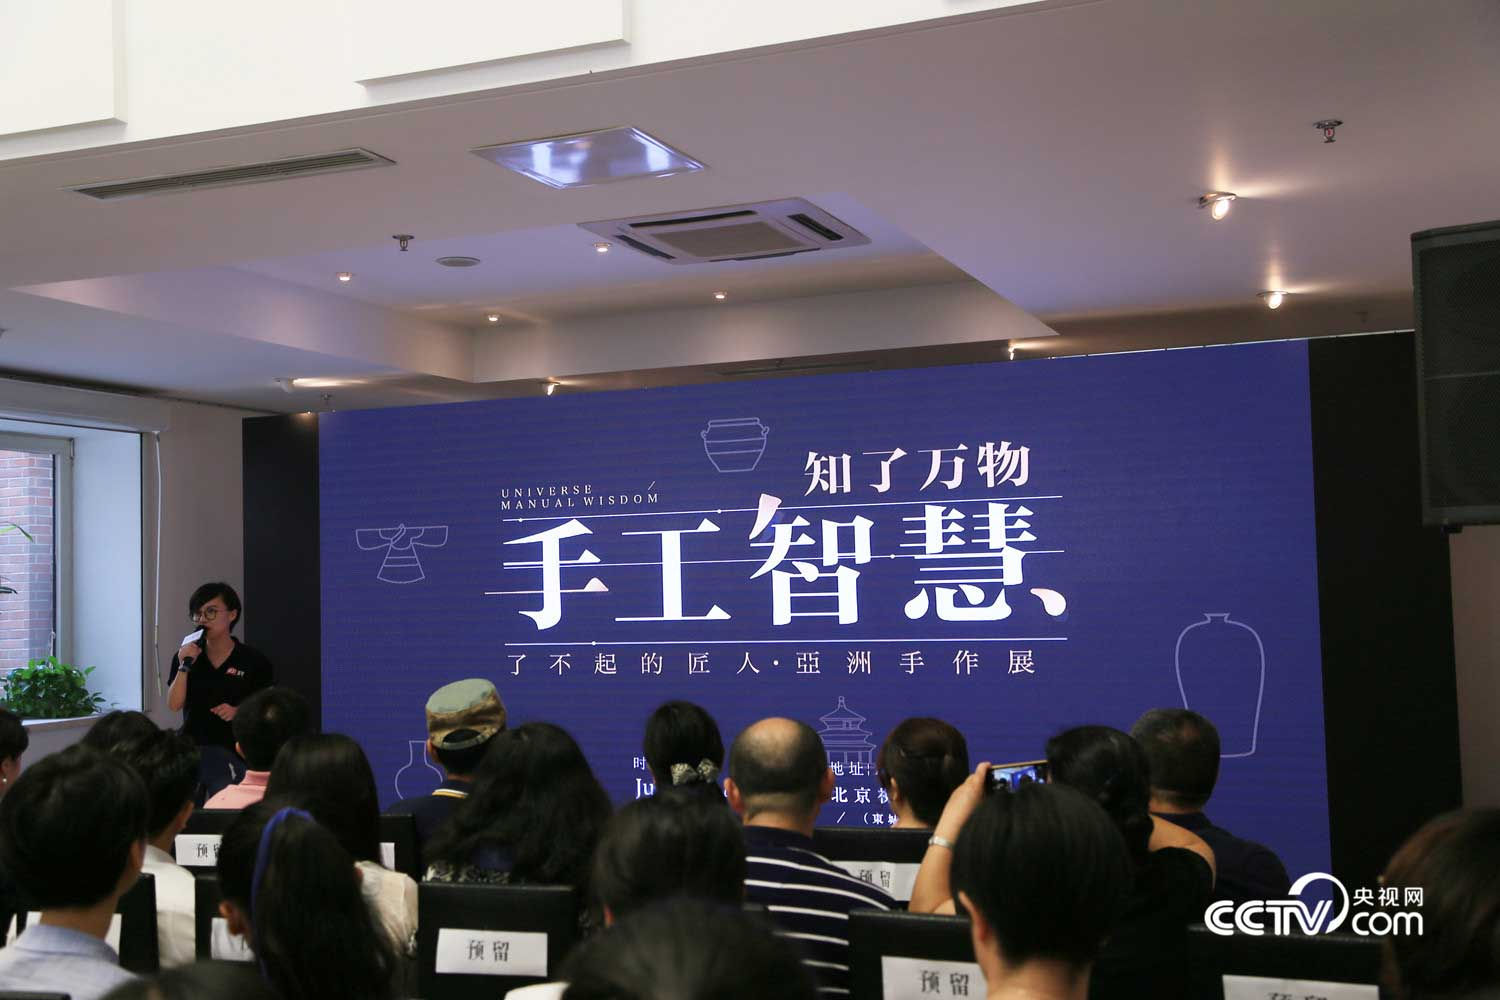 Producer of 'The Great Shokunin' Xiong Yi at the exhibition's opening ceremony